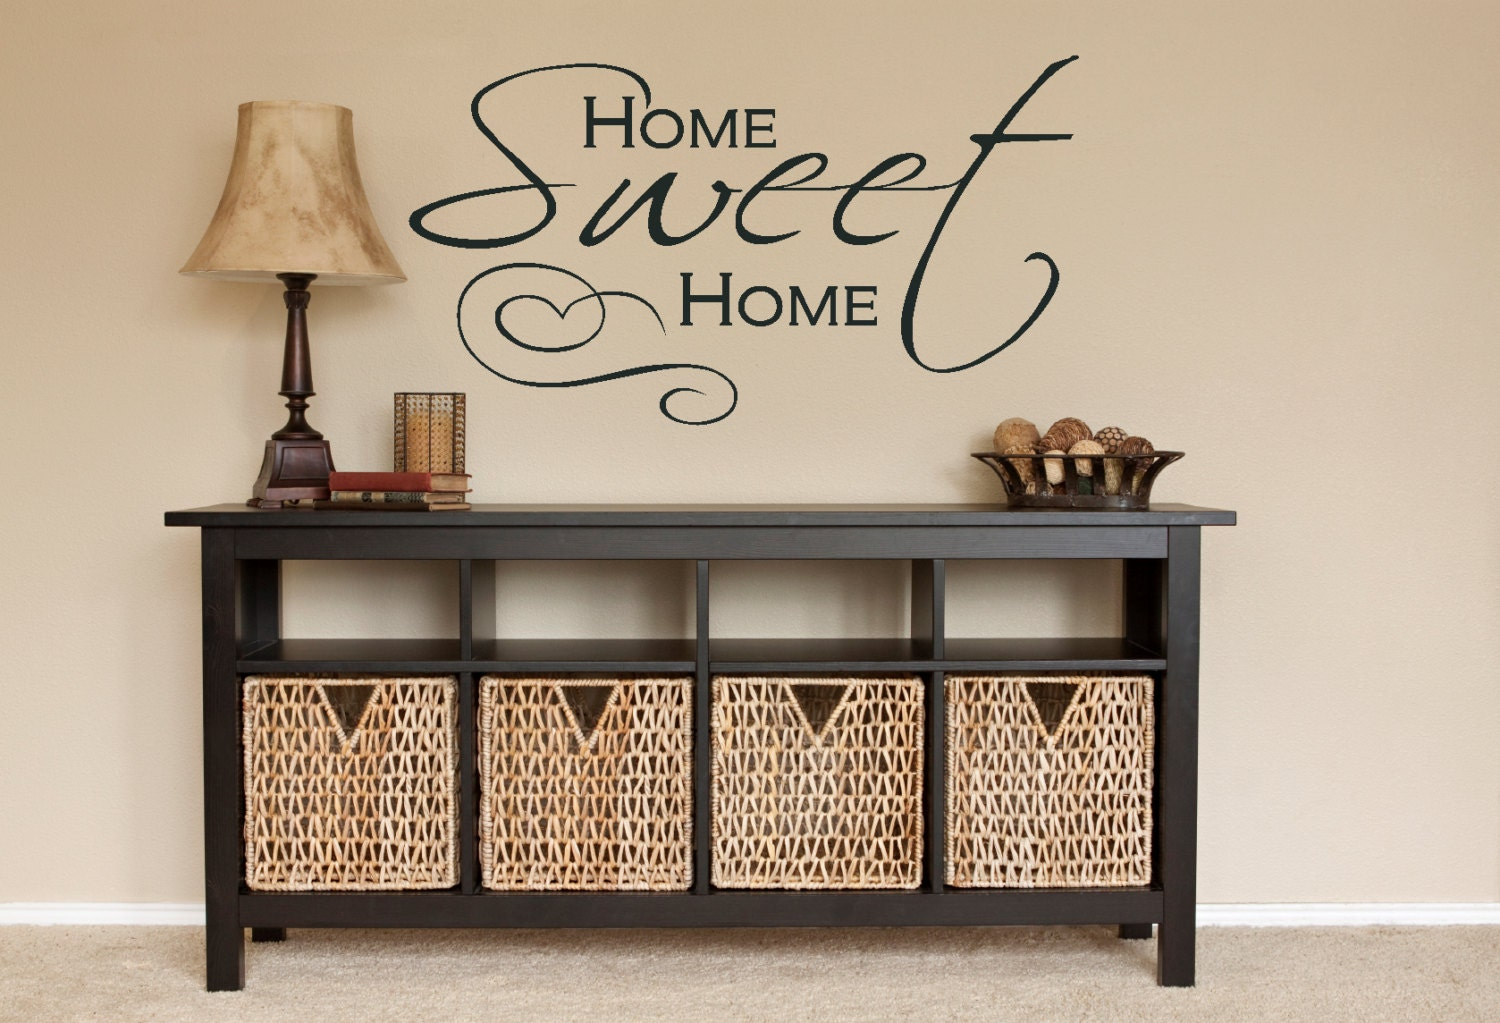 Wall decor home sweet home wall decal by amandasdesigndecals Home sweet home wall decor